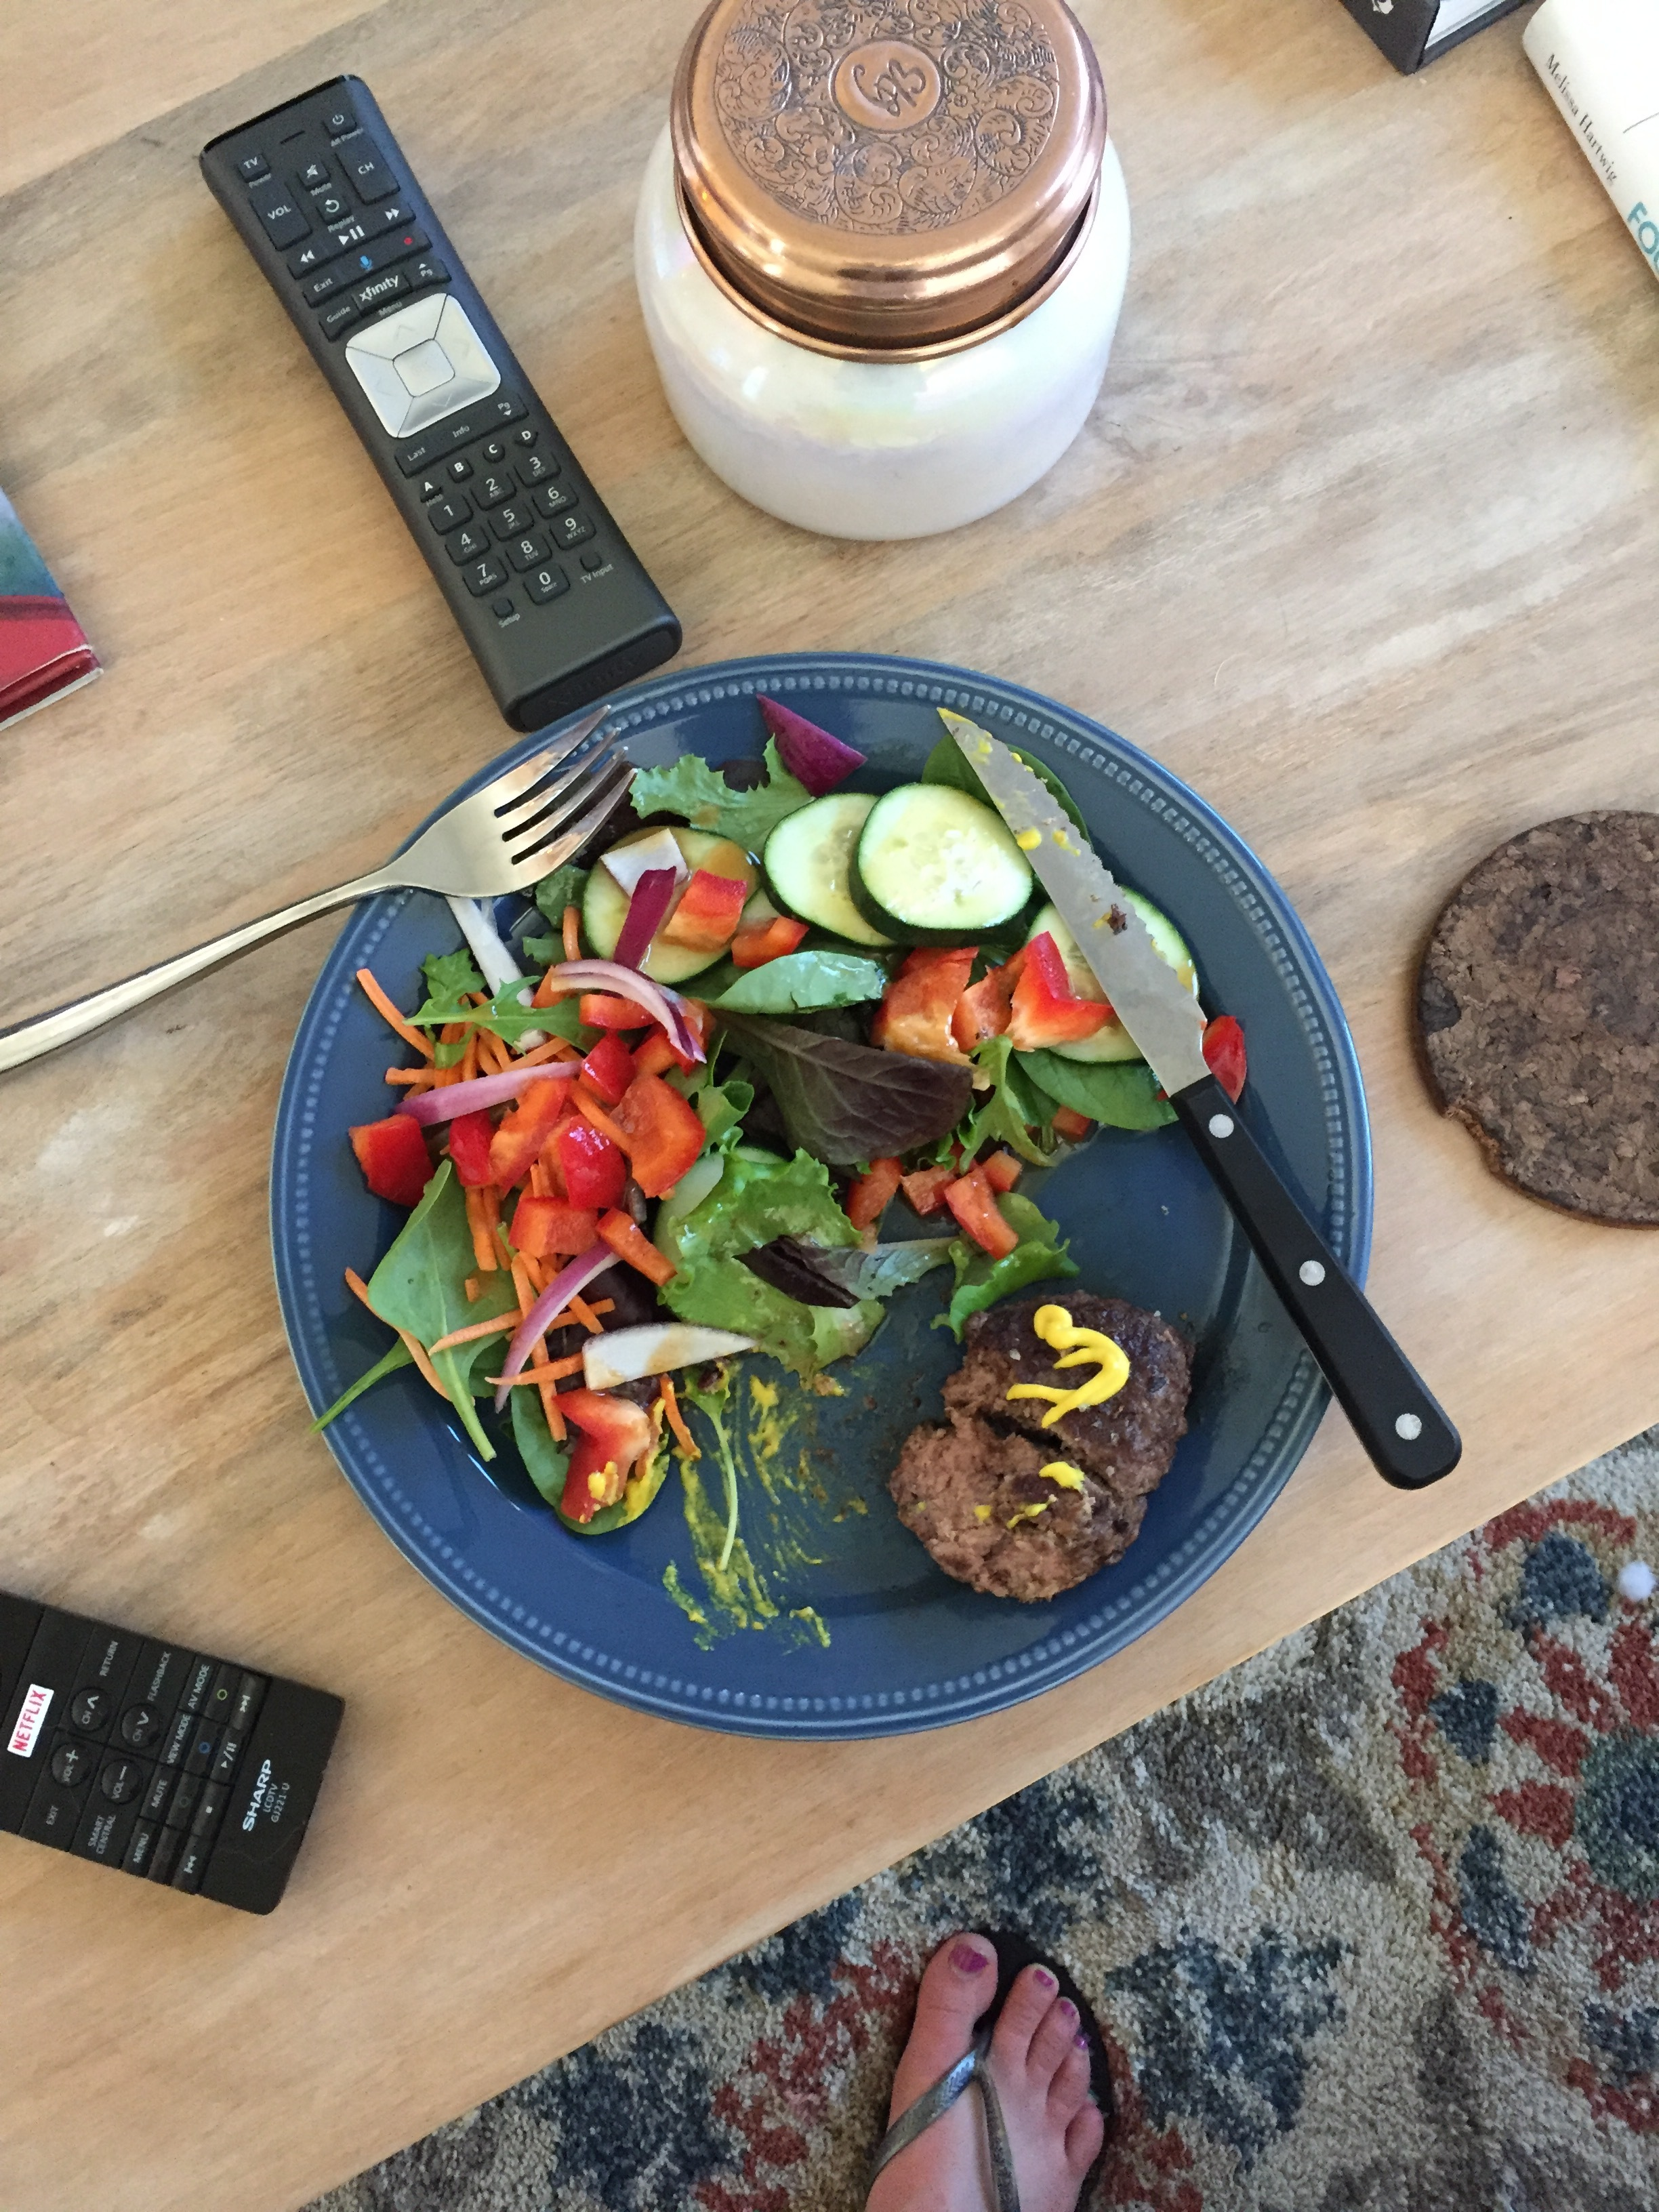 Bun-less Burgers - Sorry the picture is ugly, I am so not a food blogger, and this was mid-bite! I make my own burgers with ghee in the cast iron skillet, and tend to eat them with a huge salad. Sometimes, I ditch the mustard and use avocado on the burger, too.This salad has spinach, red onion, red pepper, cucumber, and Tessemae's balsamic vinaigrette (totally compliant for a sugar detox).